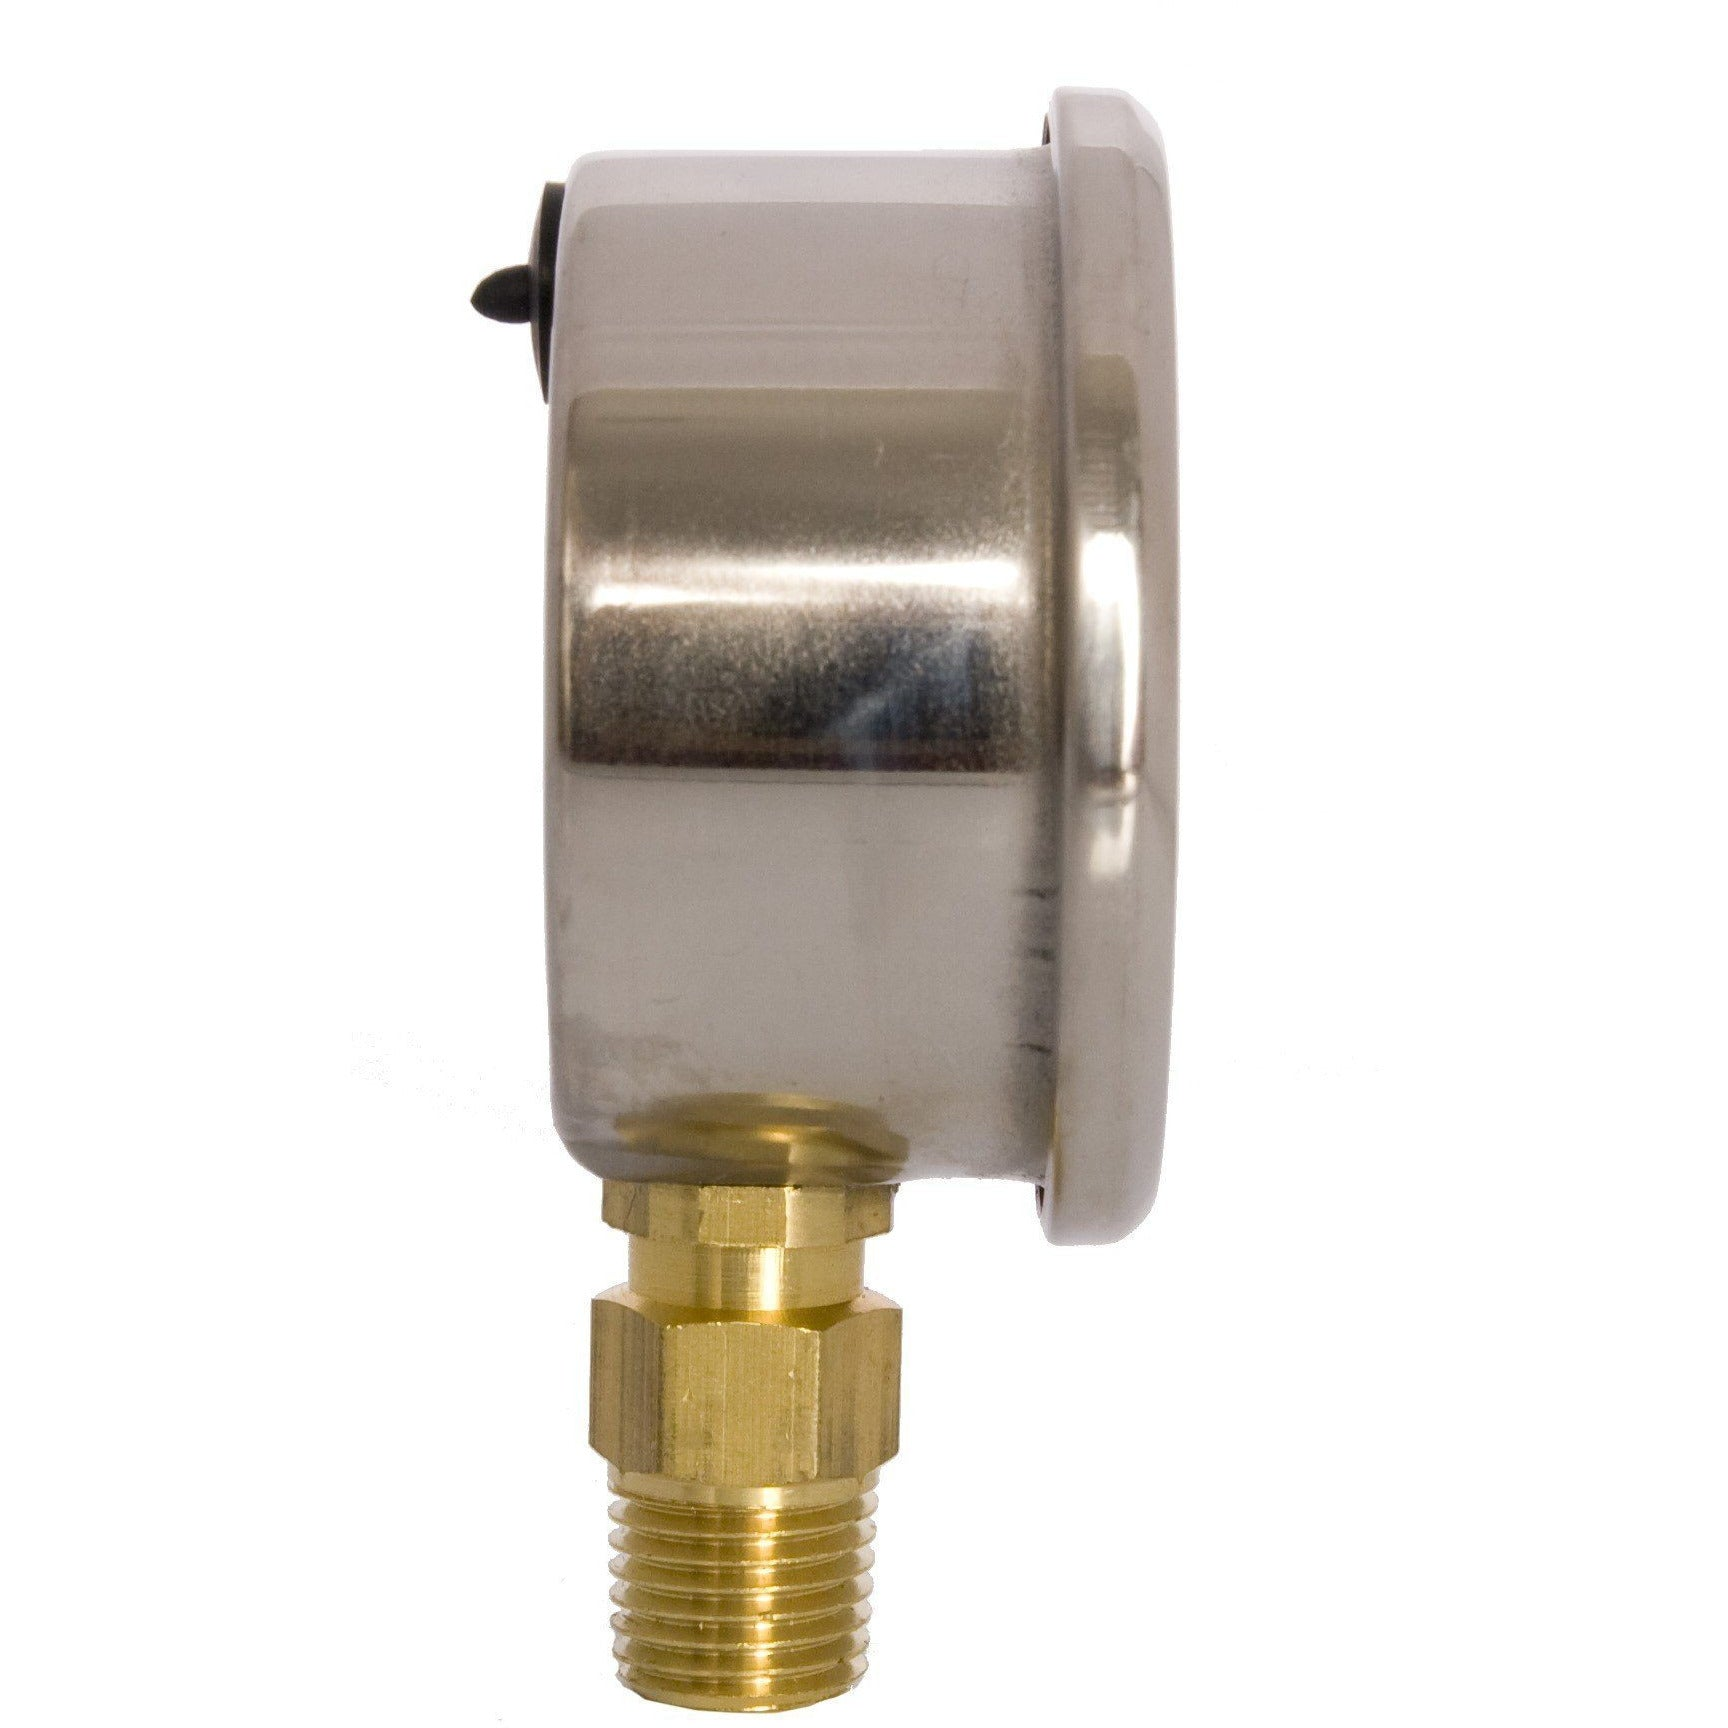 "2-1/2"" Liquid Filled Pressure Gauges - Stainless Steel Case, Brass, 1/4"" NPT, Lower Mount Connection Shop All Categories DuraChoice"